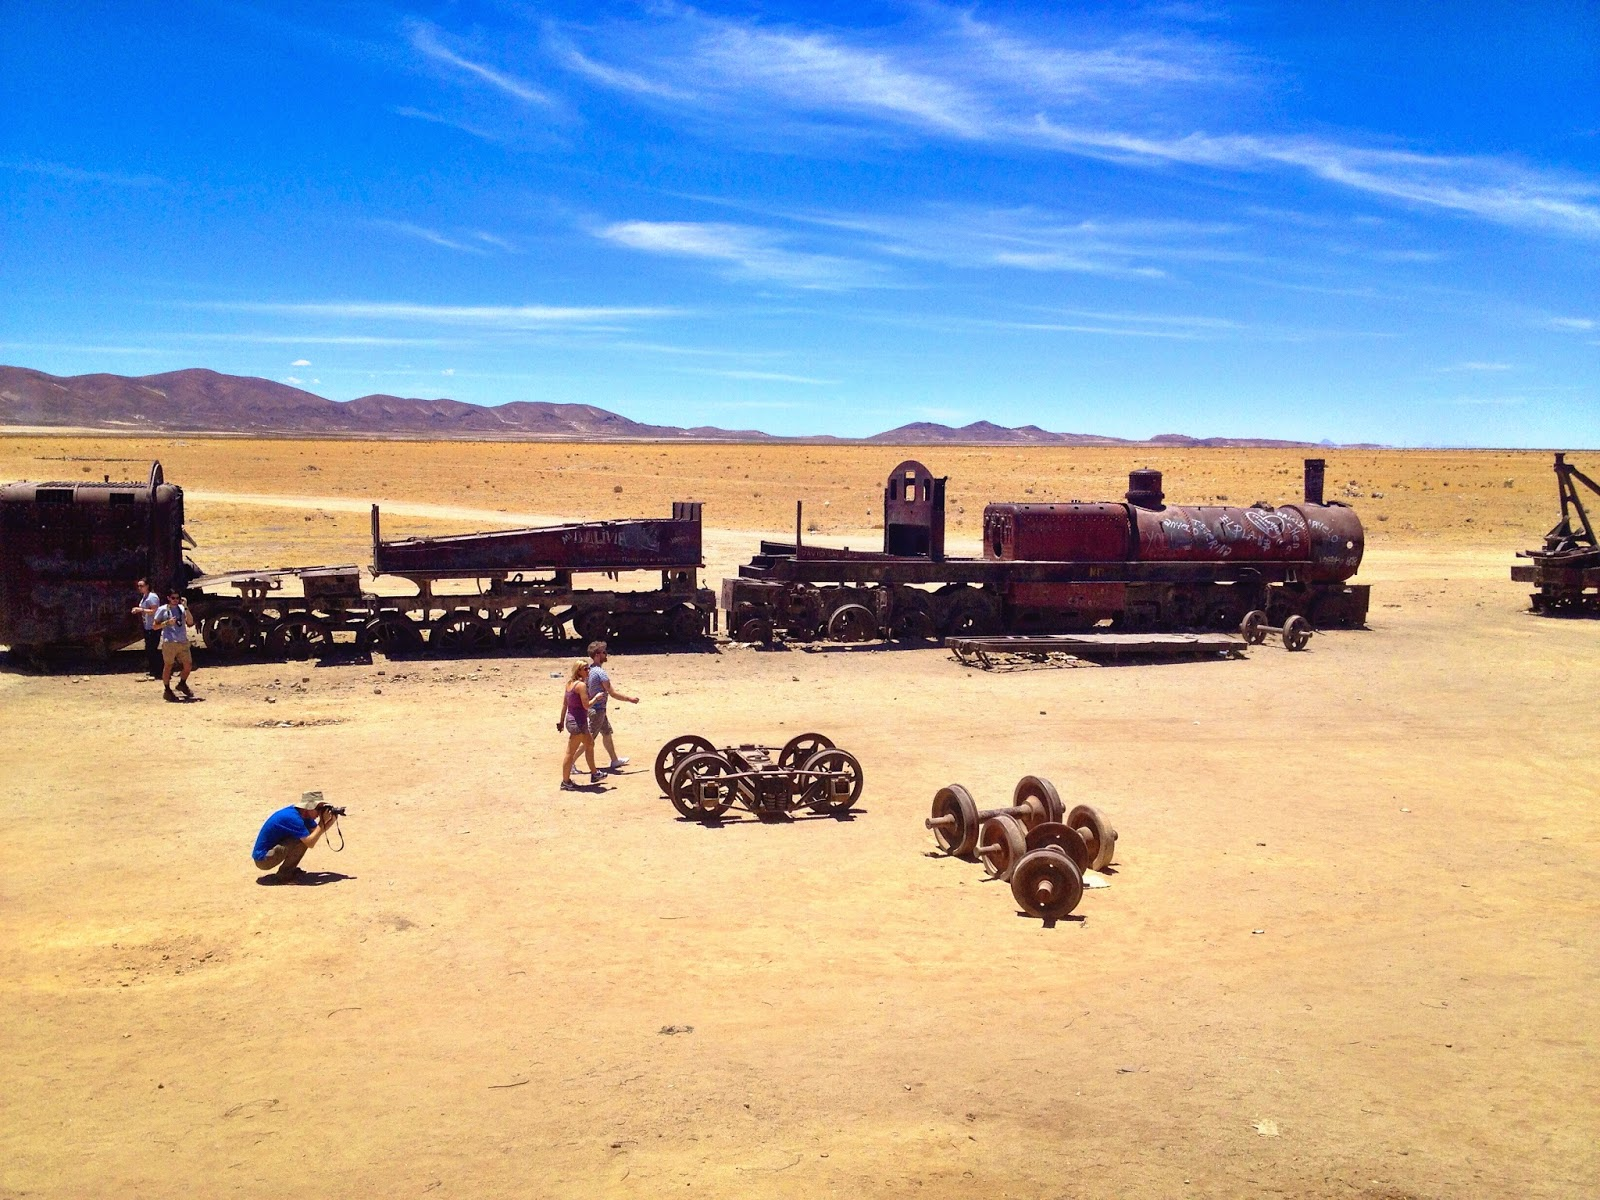 A shot from the top of a train - train graveyard - Uyuni, Bolivia